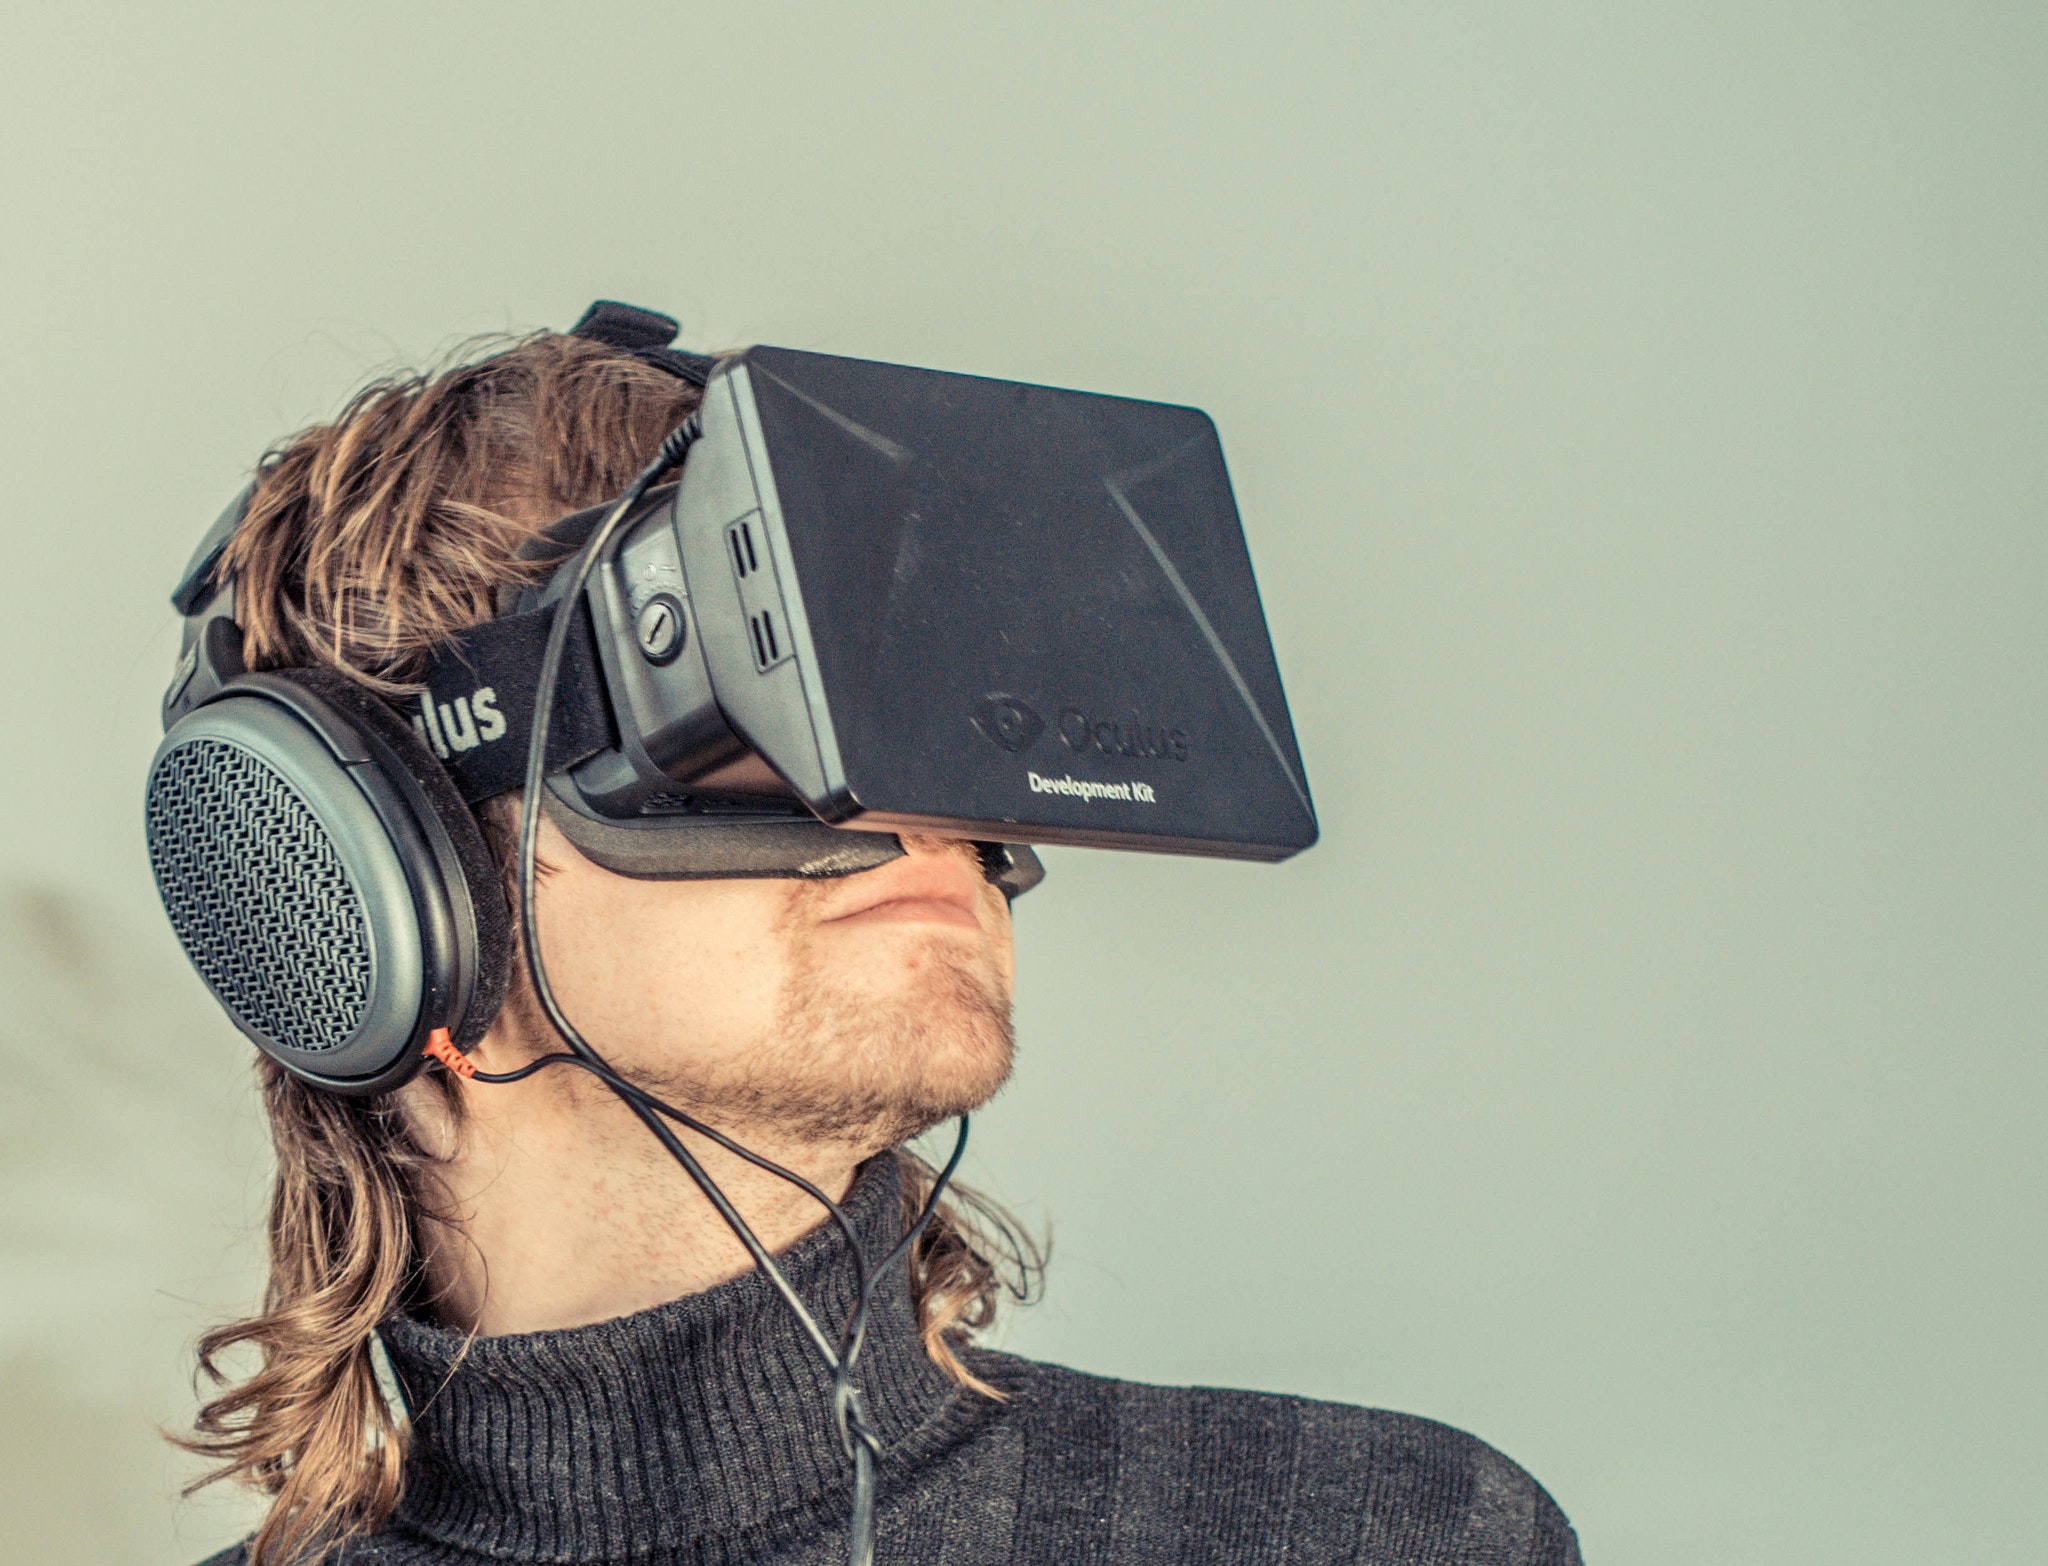 Can a virtual reality game make you forget you're in pain?